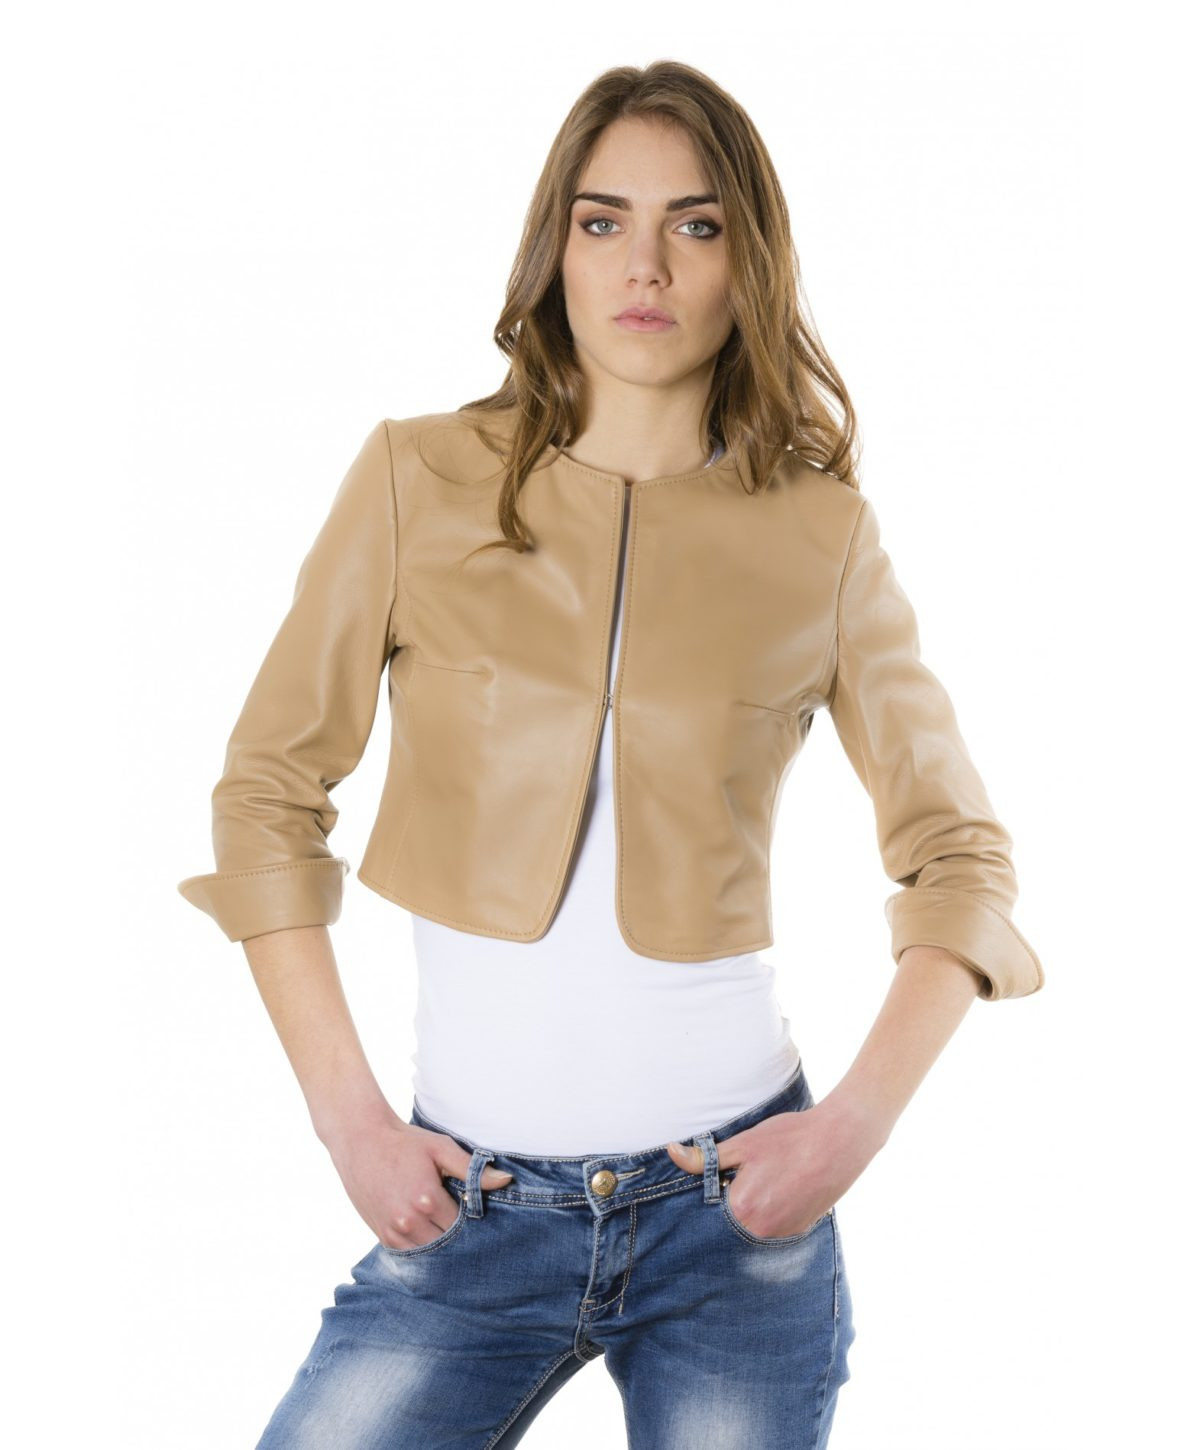 miss-brown-color-lamb-leather-round-neck-short-jacket